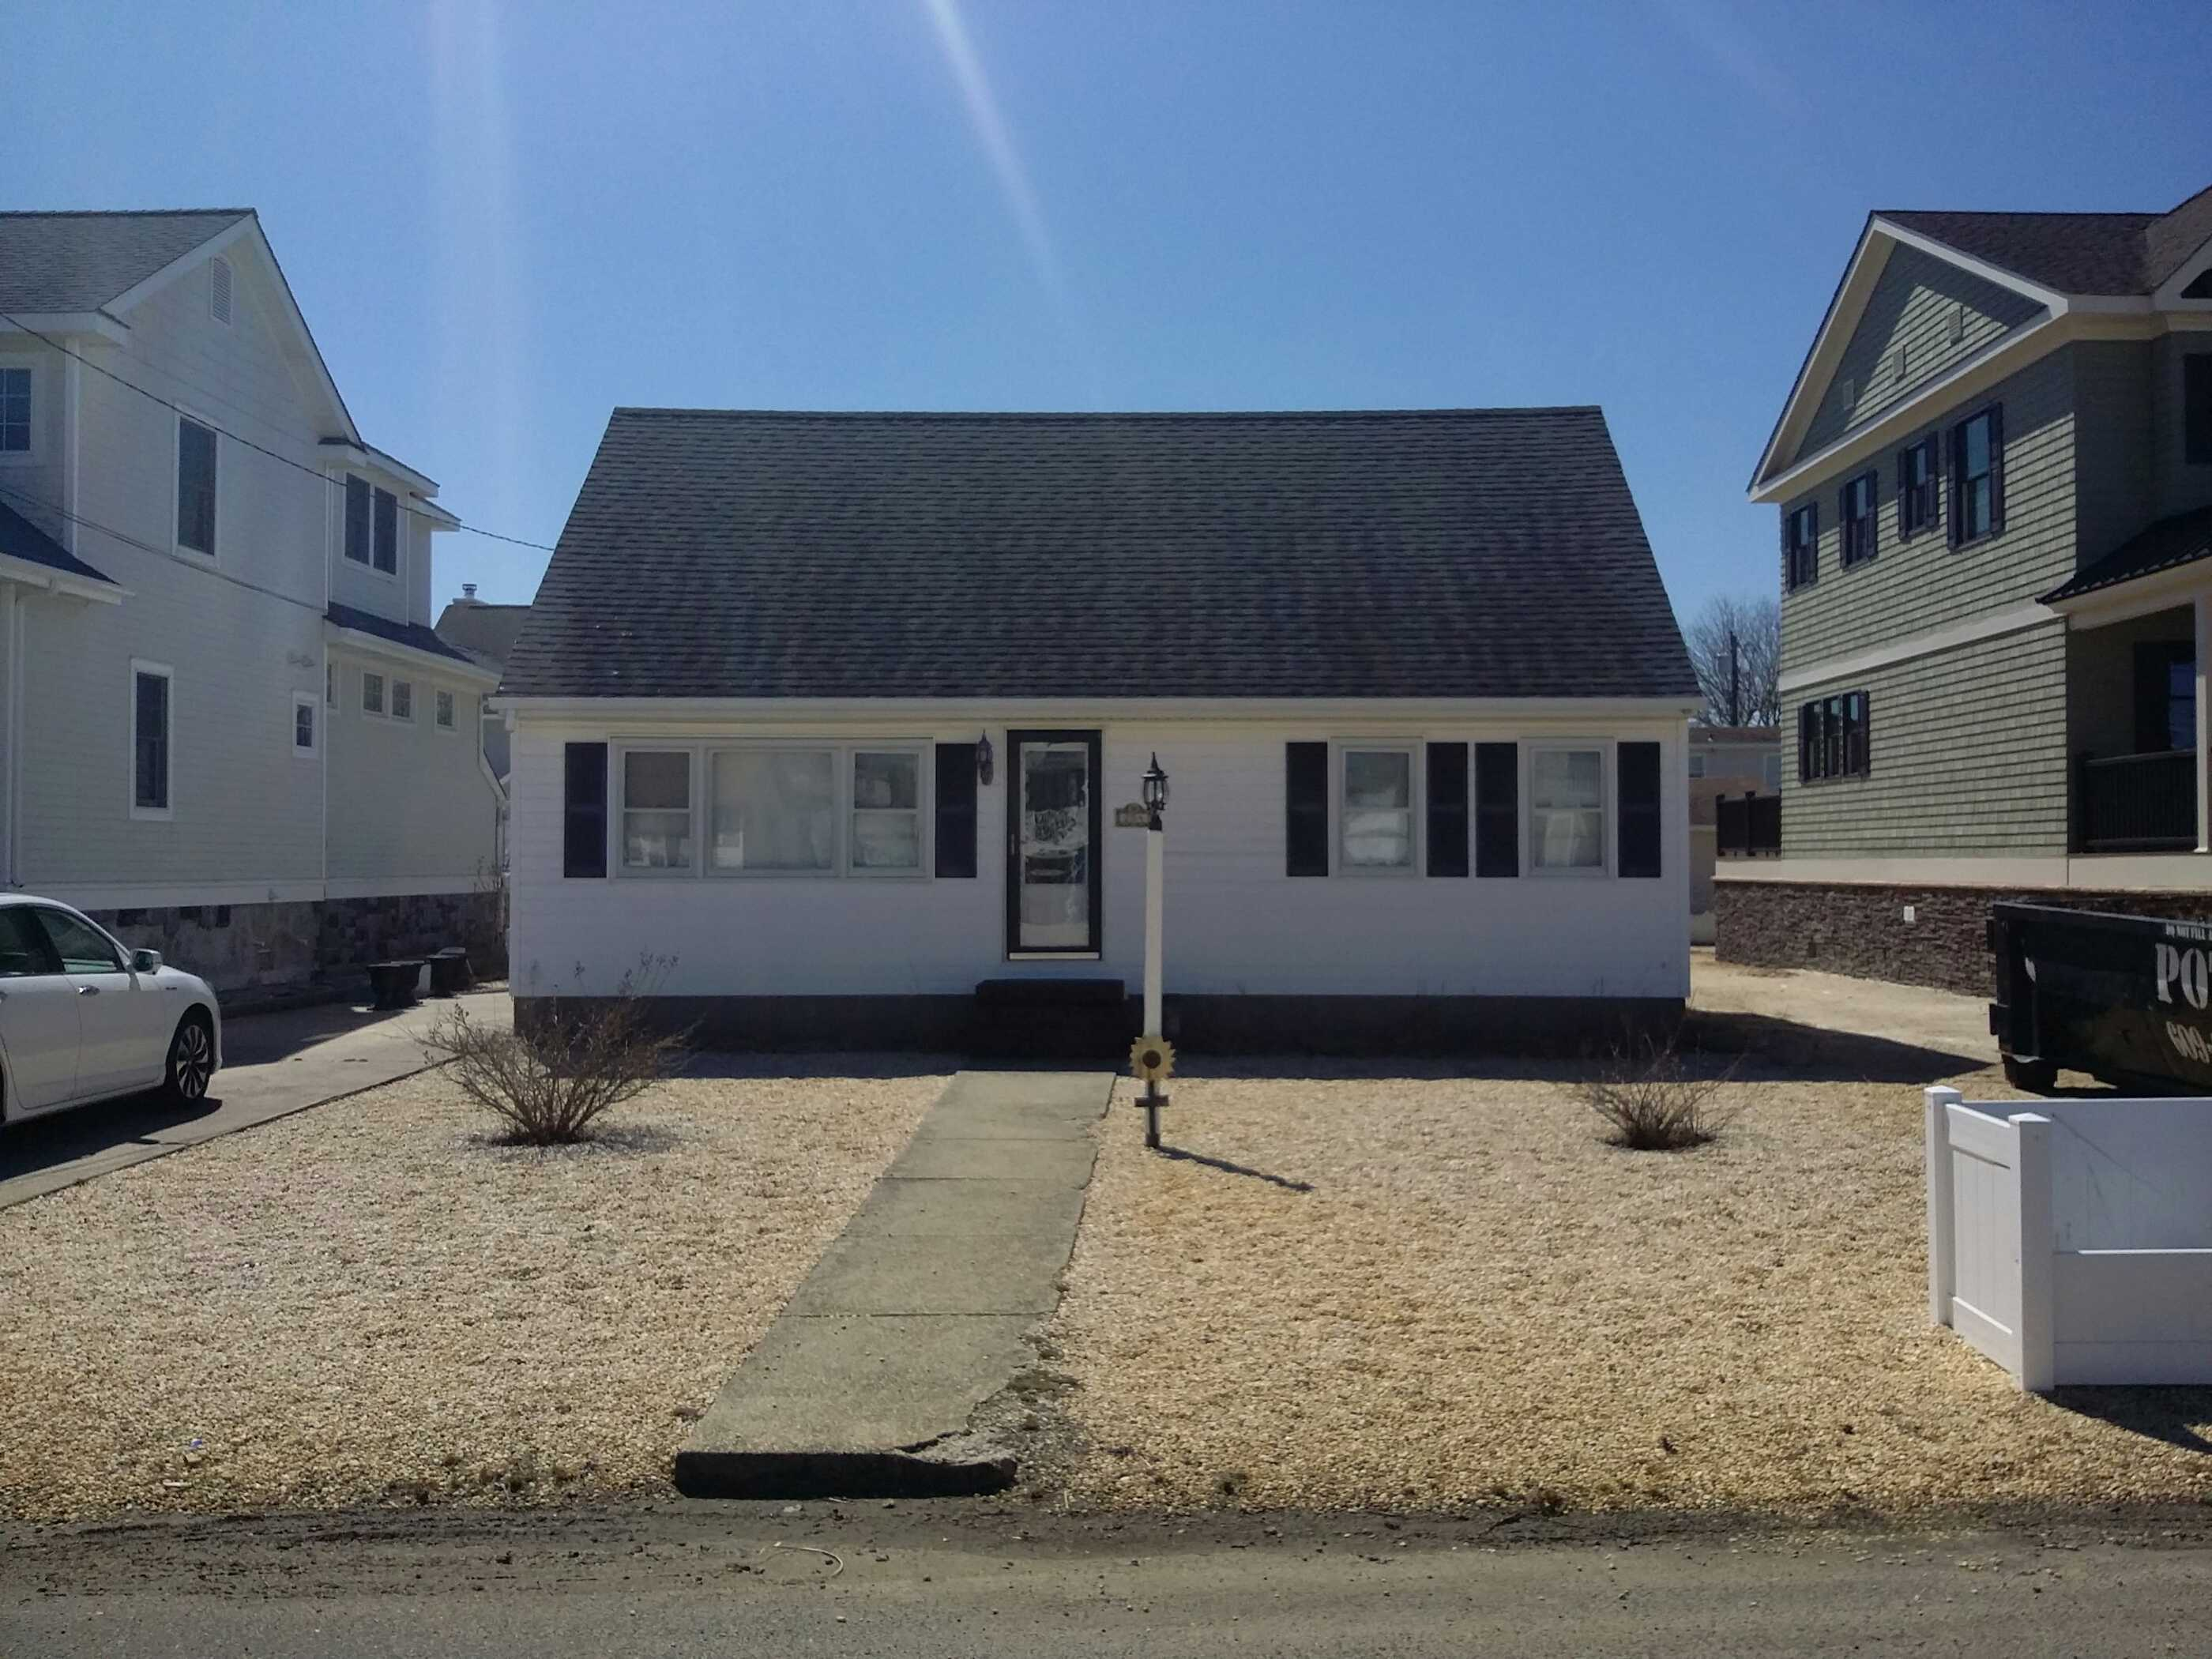 08008 foreclosures – 254 N 4th St, Surf City, NJ 08008